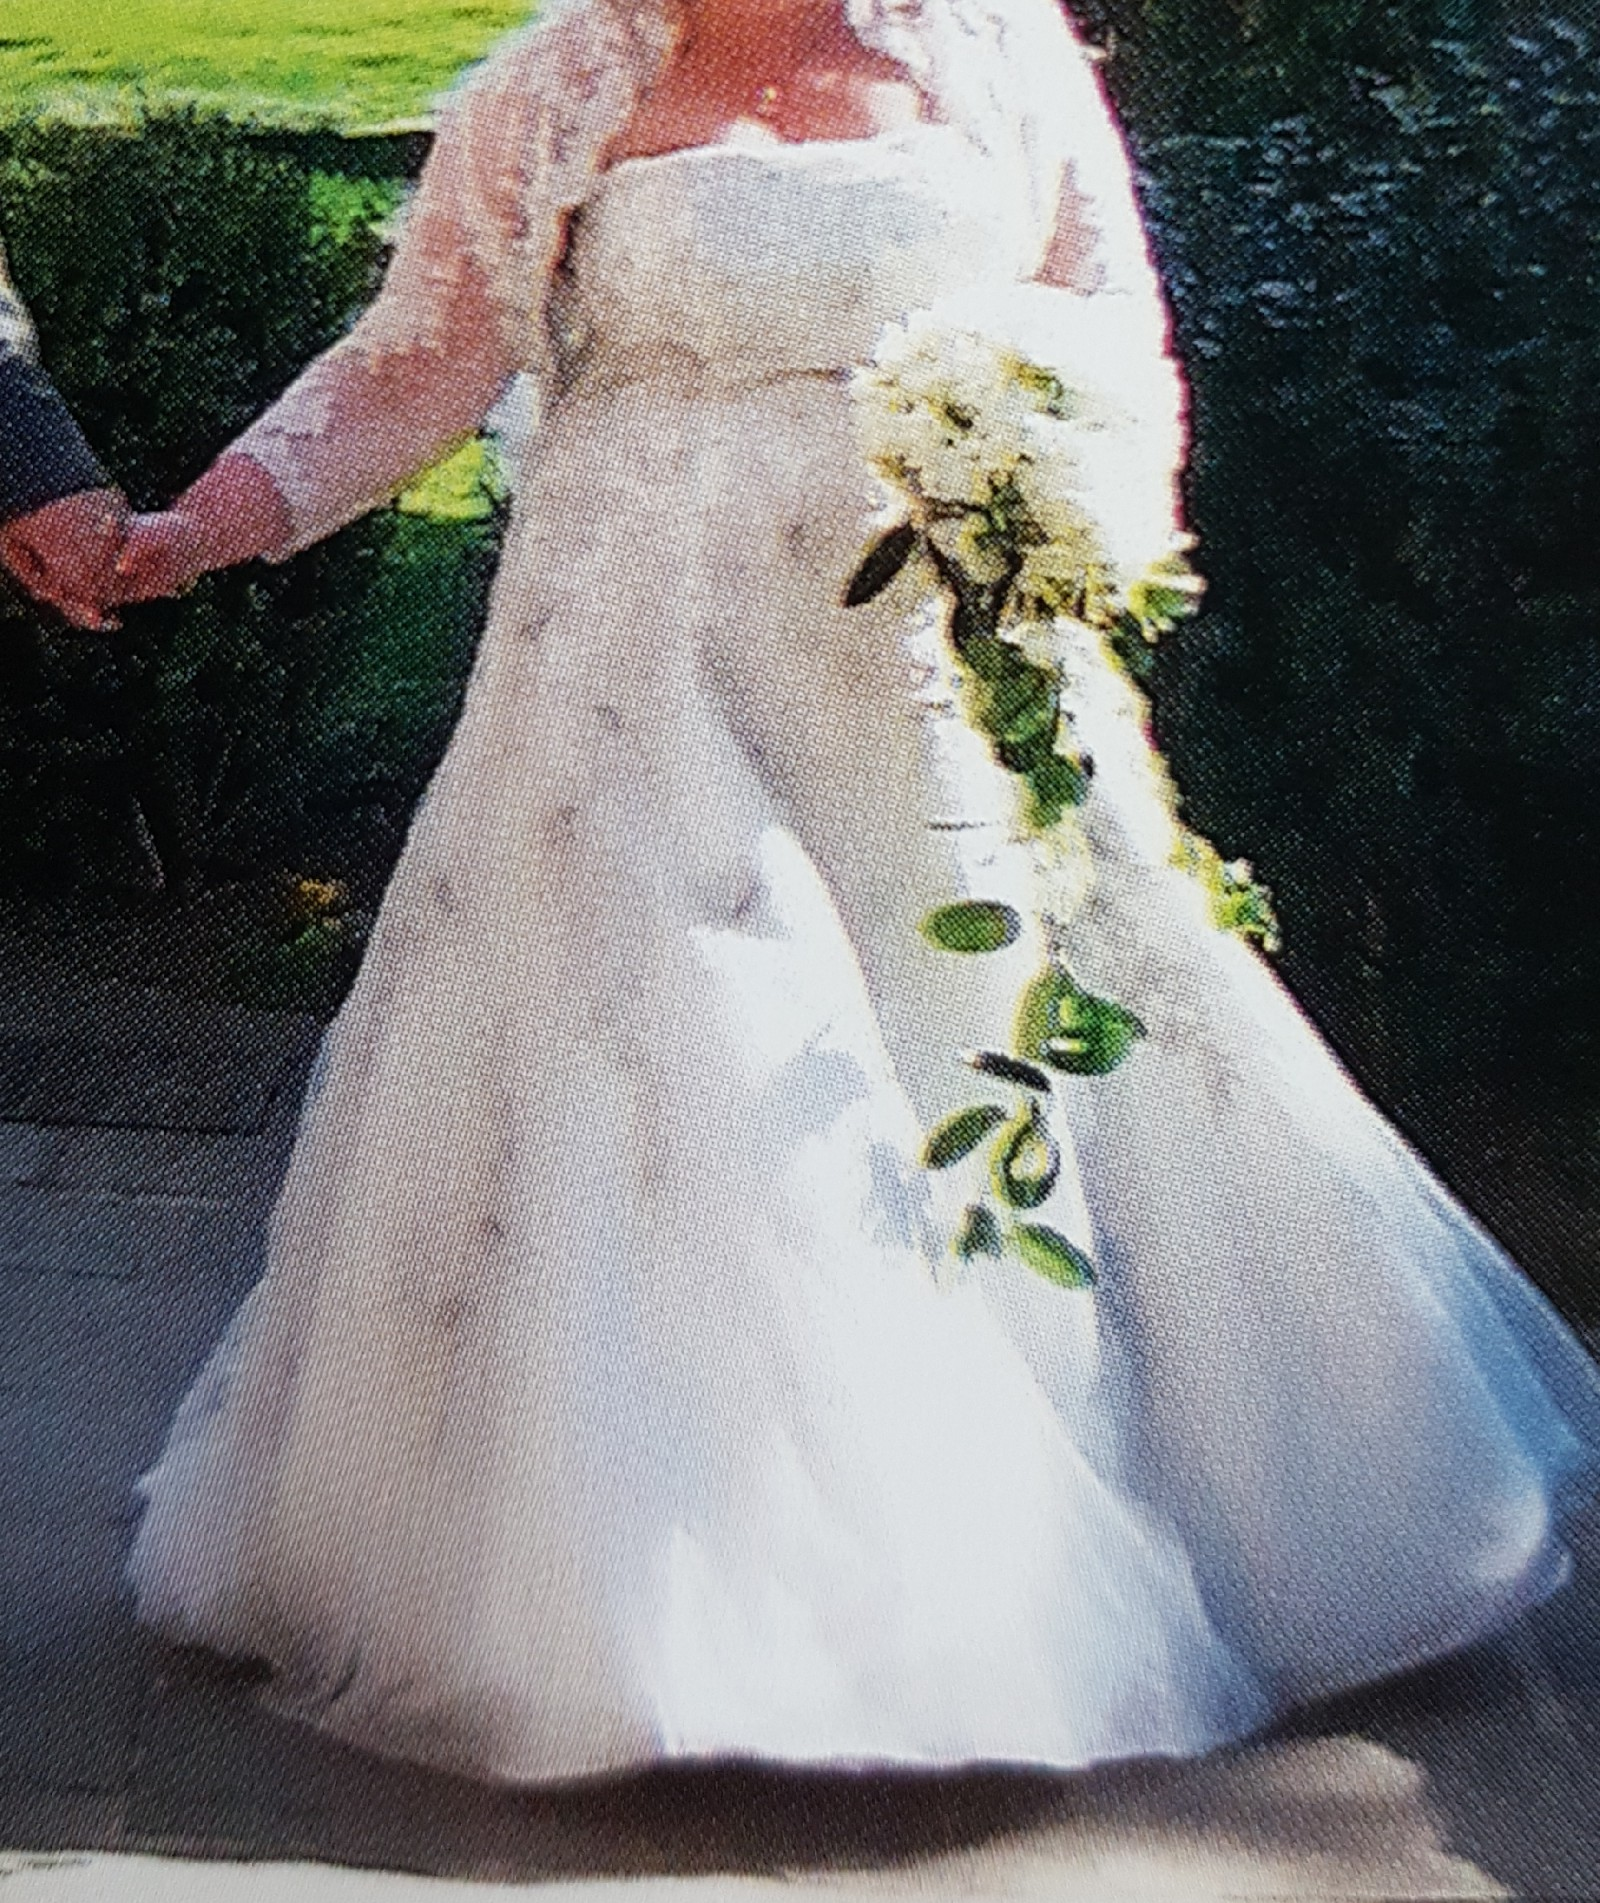 Henry Roth Second Hand Wedding Dress On Sale 82 Off: White Rose Custom Made Second Hand Wedding Dress On Sale